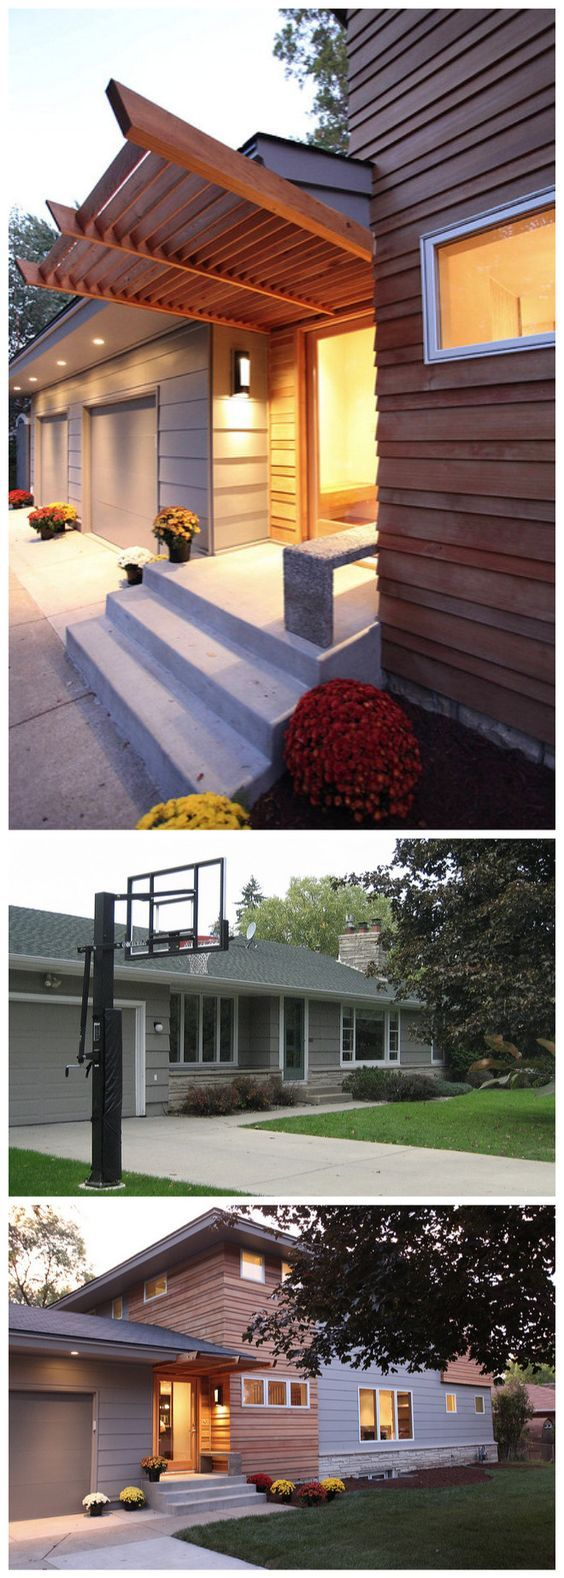 Before and after of ranch rambler renovation kuhl design build before and after Exterior home renovations calgary